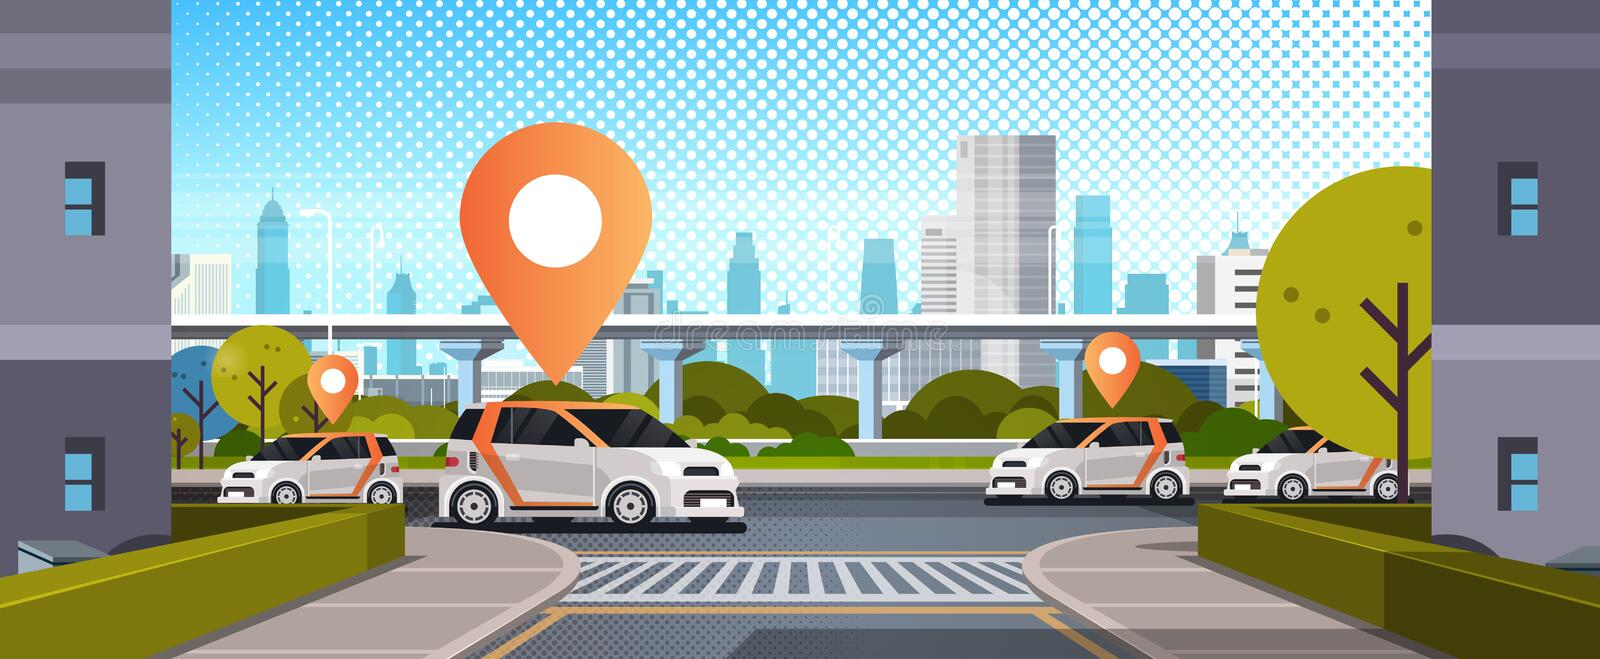 Cars with location pin on road online ordering taxi car sharing concept mobile transportation carsharing service modern. City street cityscape background flat stock illustration